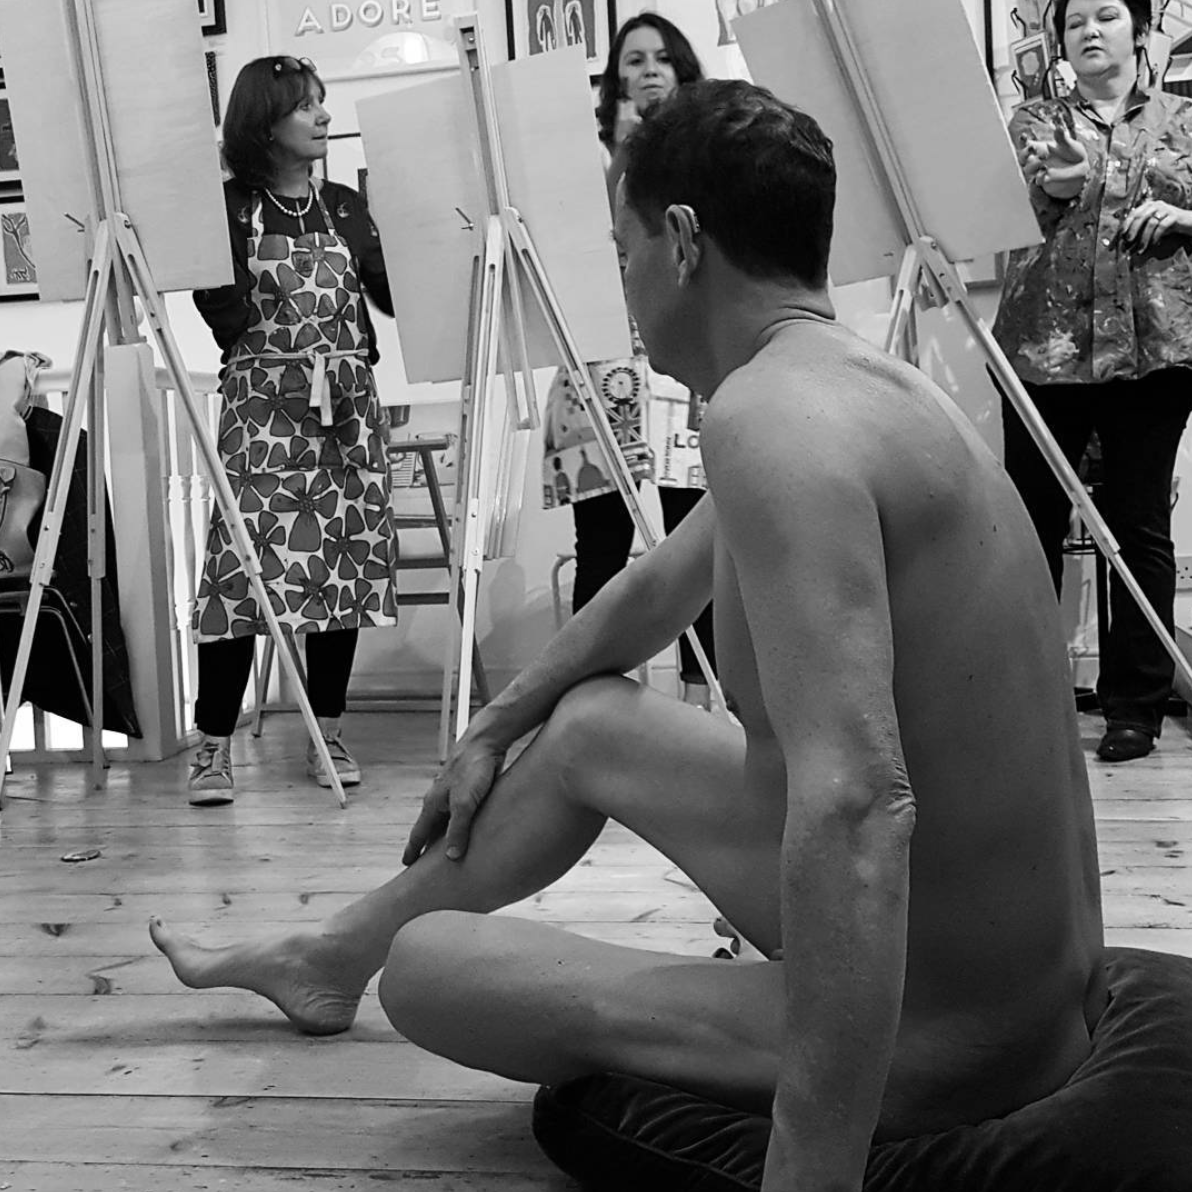 Dumplings Drawings and Drinks 2!     17TH NOVEMBER 2017    Afters a successful Dumplings, Drawings and Drinks part 1, Marks and Tilt are proud to Host a part 2 of this amazing life drawing event !  Tickets ar £50 per person  For more information please email: info@marksandtilt.com  The Host Oliver Marks is an artist who part owns Marks & Tilt Picture Framers and Gallery and has a relaxed approach to tutoring.  The Venue Marks & Tilt is a bespoke picture framers and fine art gallery in the heart of St Albans. The upper level houses a unique Gallery space which enables the public to view bespoke of artworks from the local art scene and the lower level is home to the framing workshop where all frames are made in-house.  The Evening View our private gallery and discuss our latest exhibition  A figure drawing class with nude professional model  A mix of vegetarian and chicken dumplings from a modern Japanese local restaurant, Kimaya  A glass or two of red/white wine, beer or non-alcoholic drink  Critique/Discussion at the end of the evening All materials included  The Requirements  A sense of humour Concentration whilst drawing Conversation